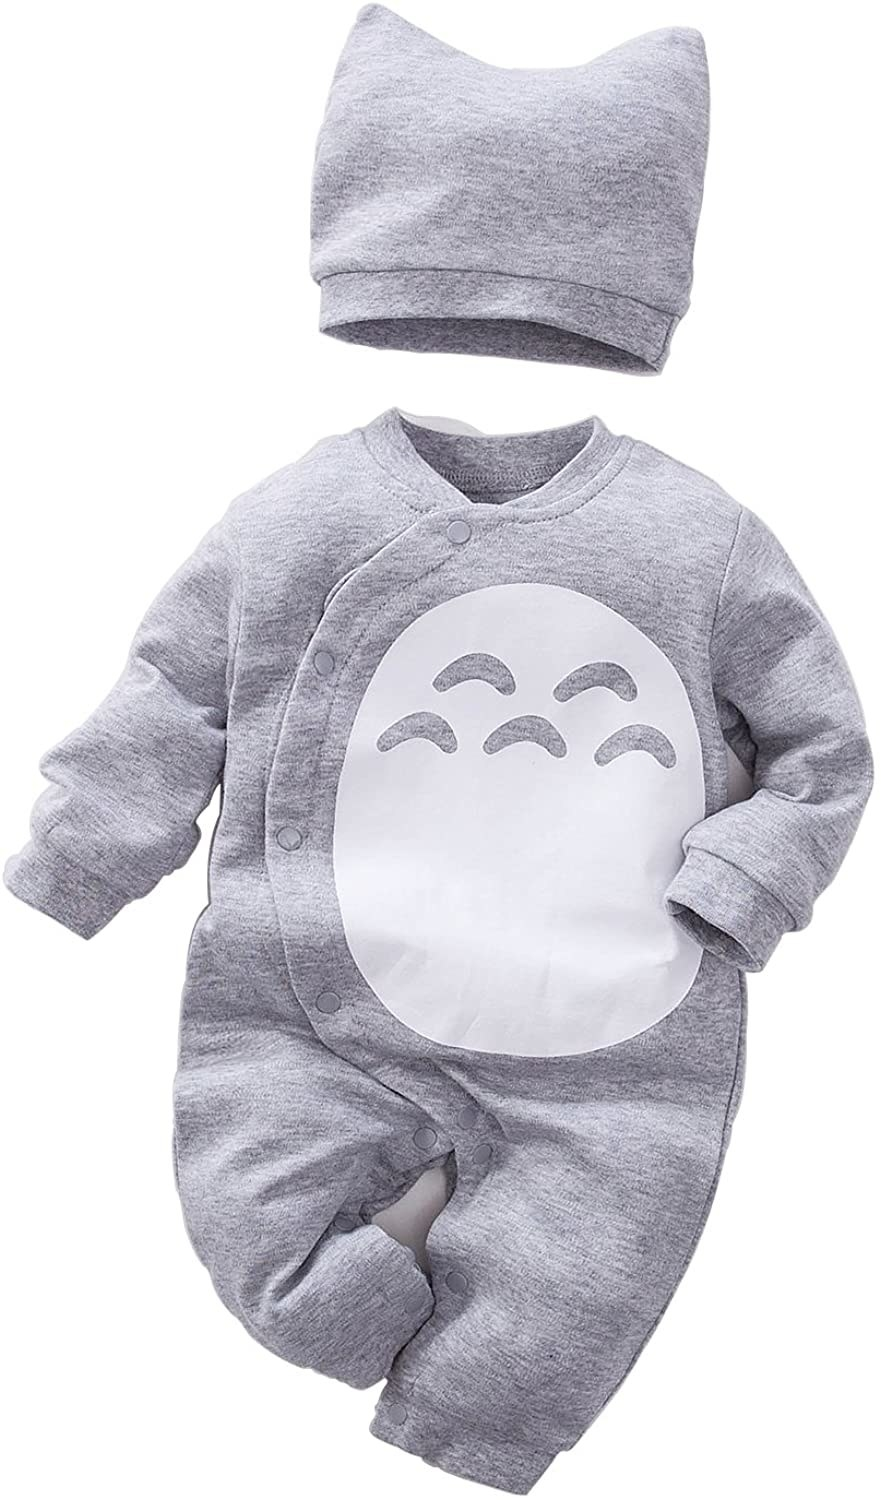 A hat and baby romper with a button closure